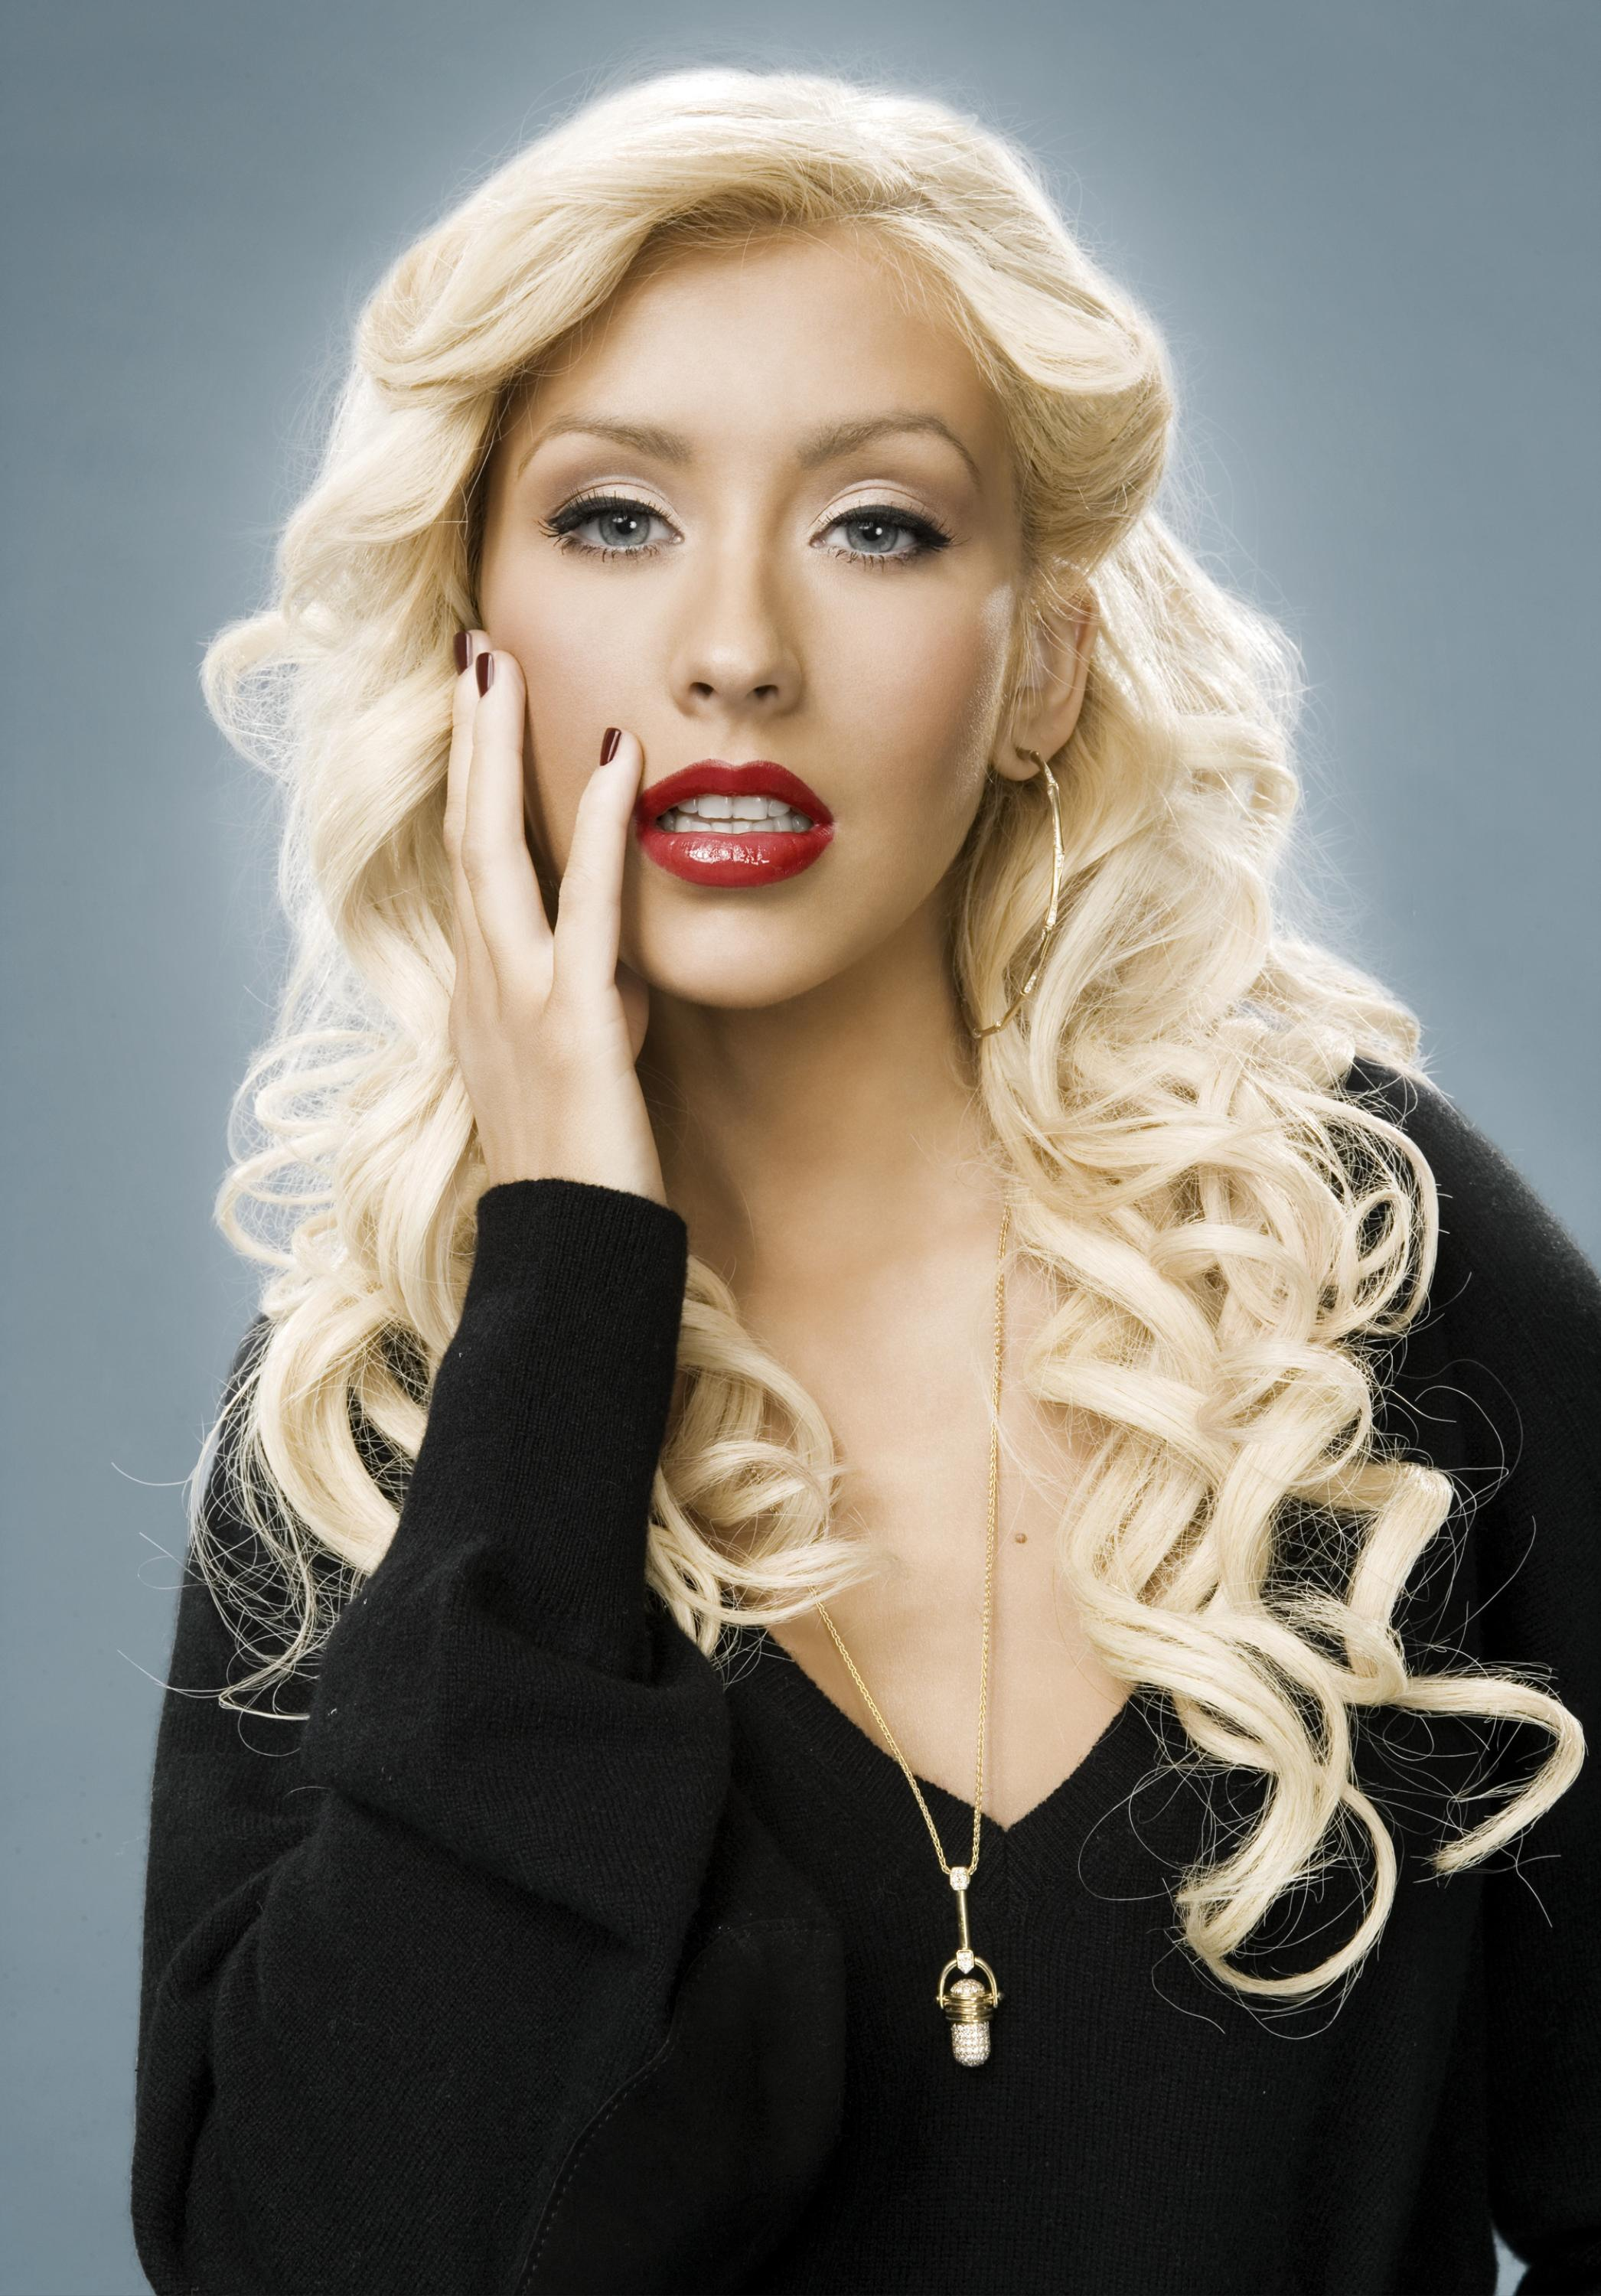 91310_Christina_Aguilera-012963_Dale_May_Photoshoot_122_646lo.jpg